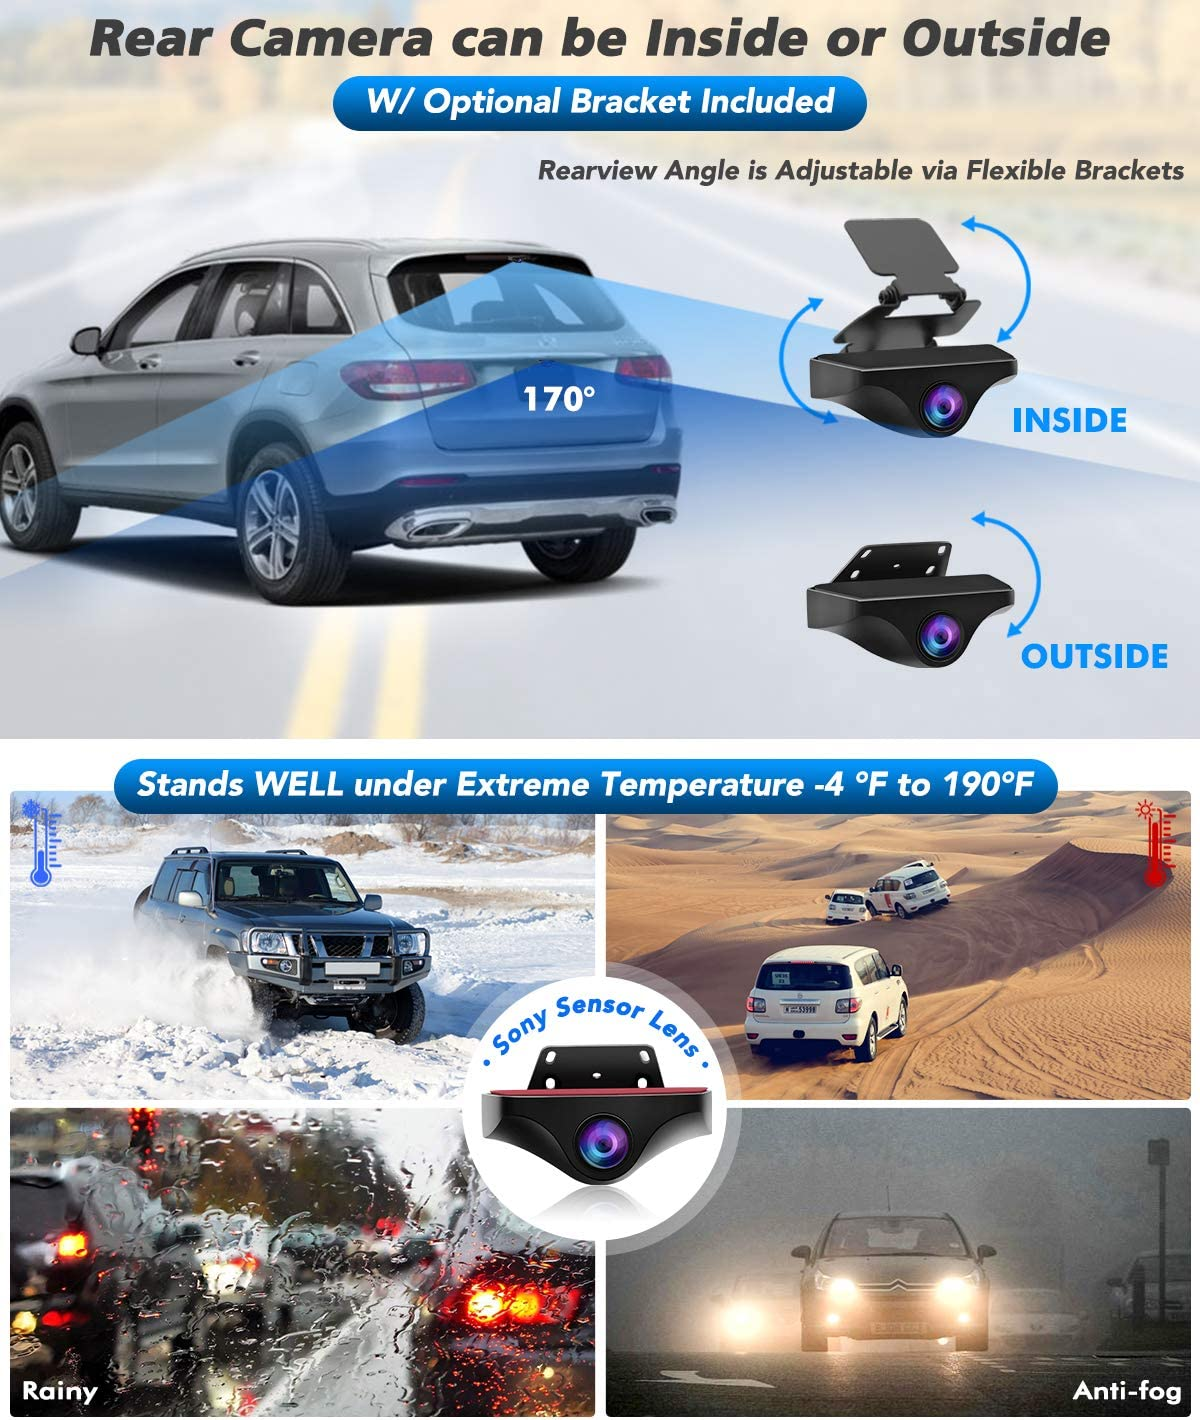 PORMIDO 12 inch Mirror Dash Cam with Split Front Camera 360/°,Anti Glare Touch Screen Full HD 1920P,Car Rear View Backup Camera Dual Lens Sony,Super Night Vision,Parking Monitoring